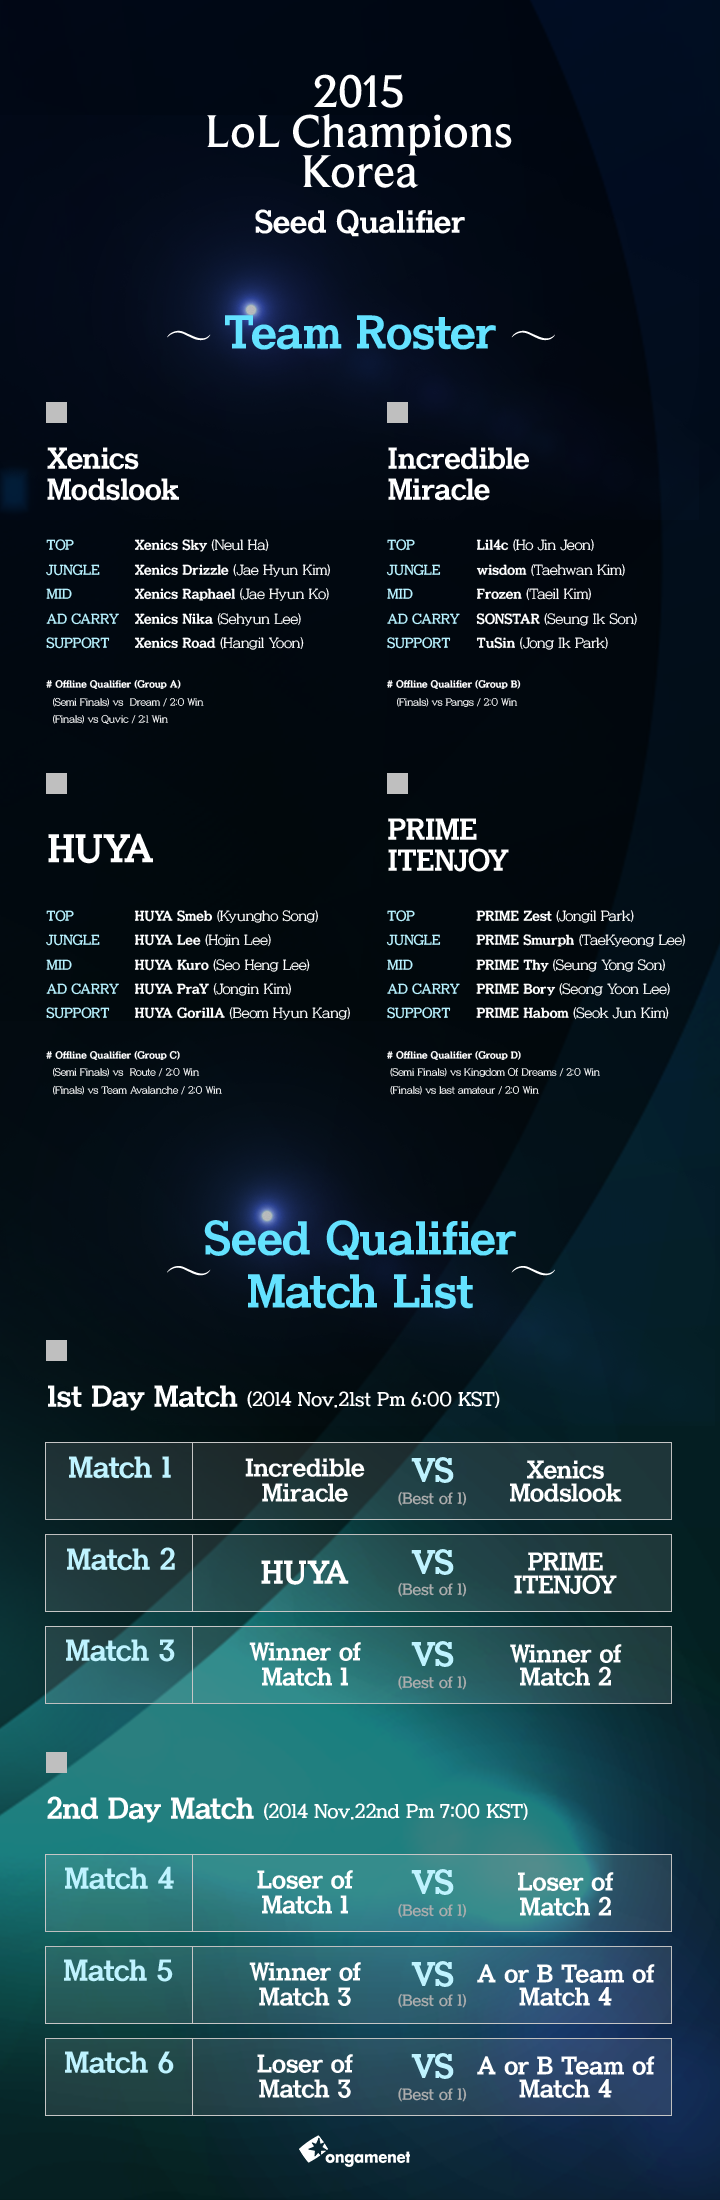 LoL Champions Korea Seed Qualifier team roster E (애매한 용어 삭제).png